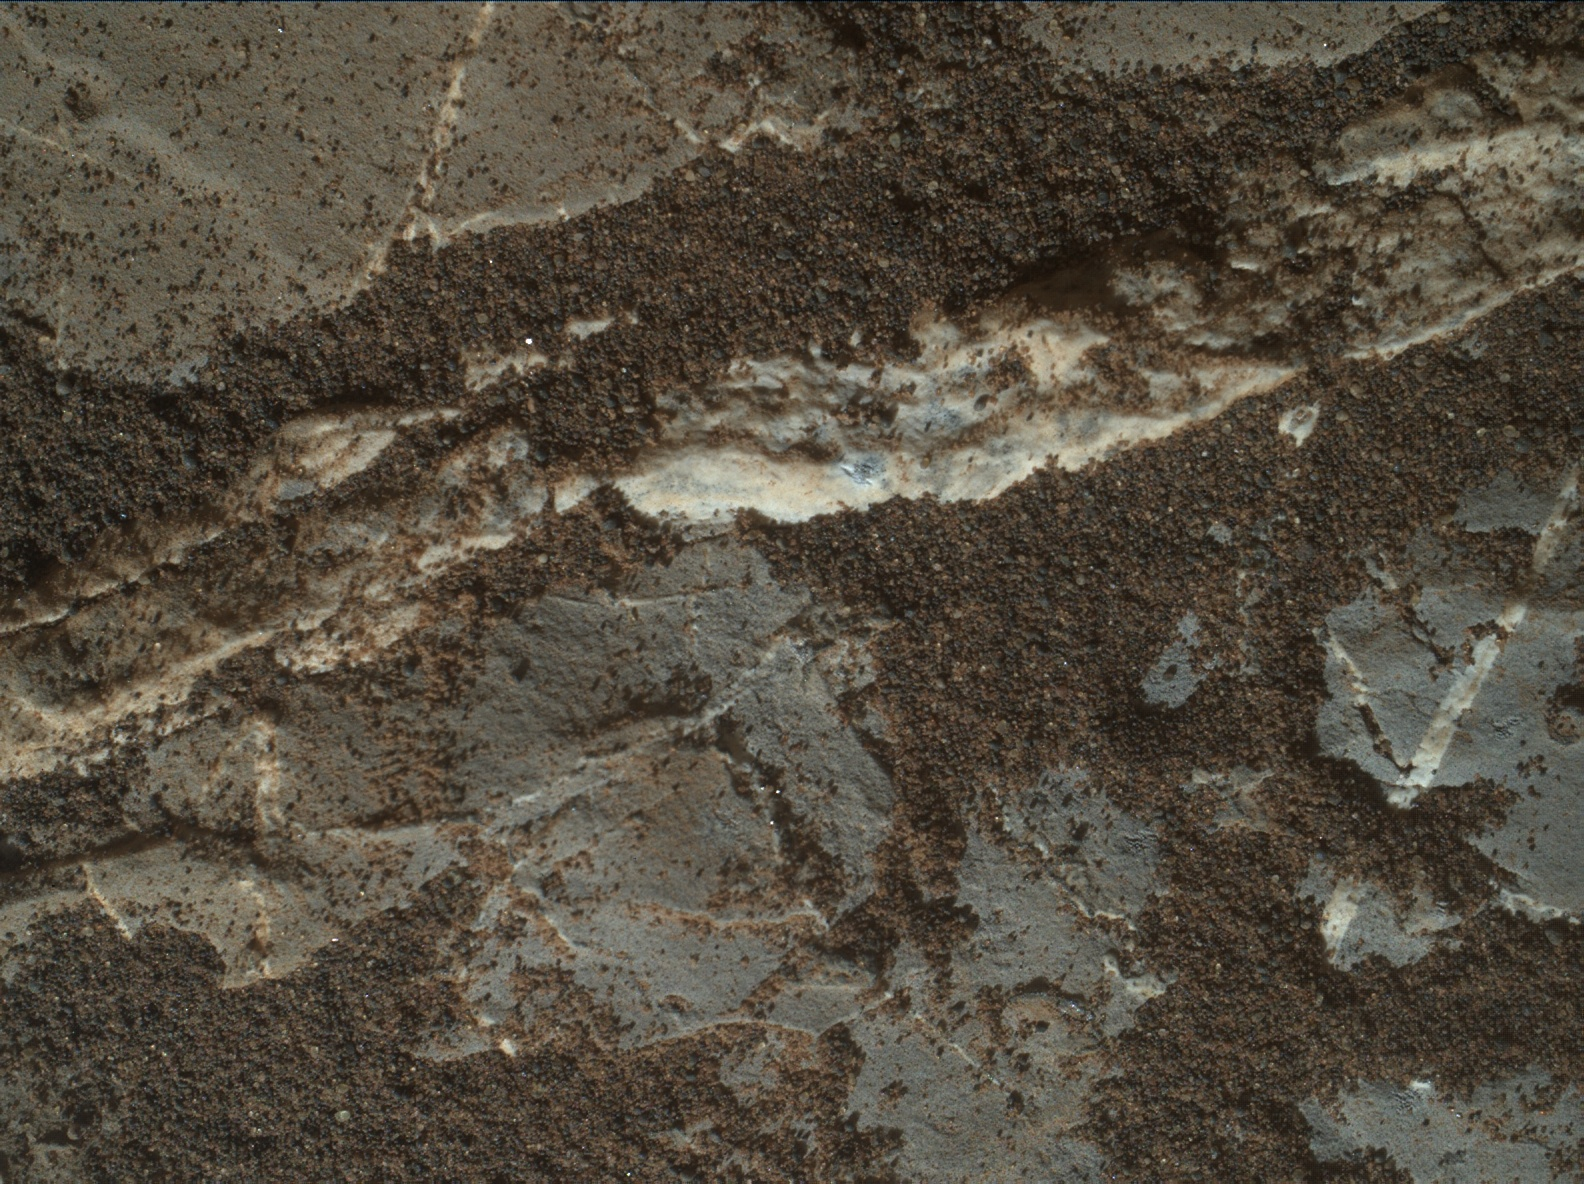 Nasa's Mars rover Curiosity acquired this image using its Mars Hand Lens Imager (MAHLI) on Sol 1975